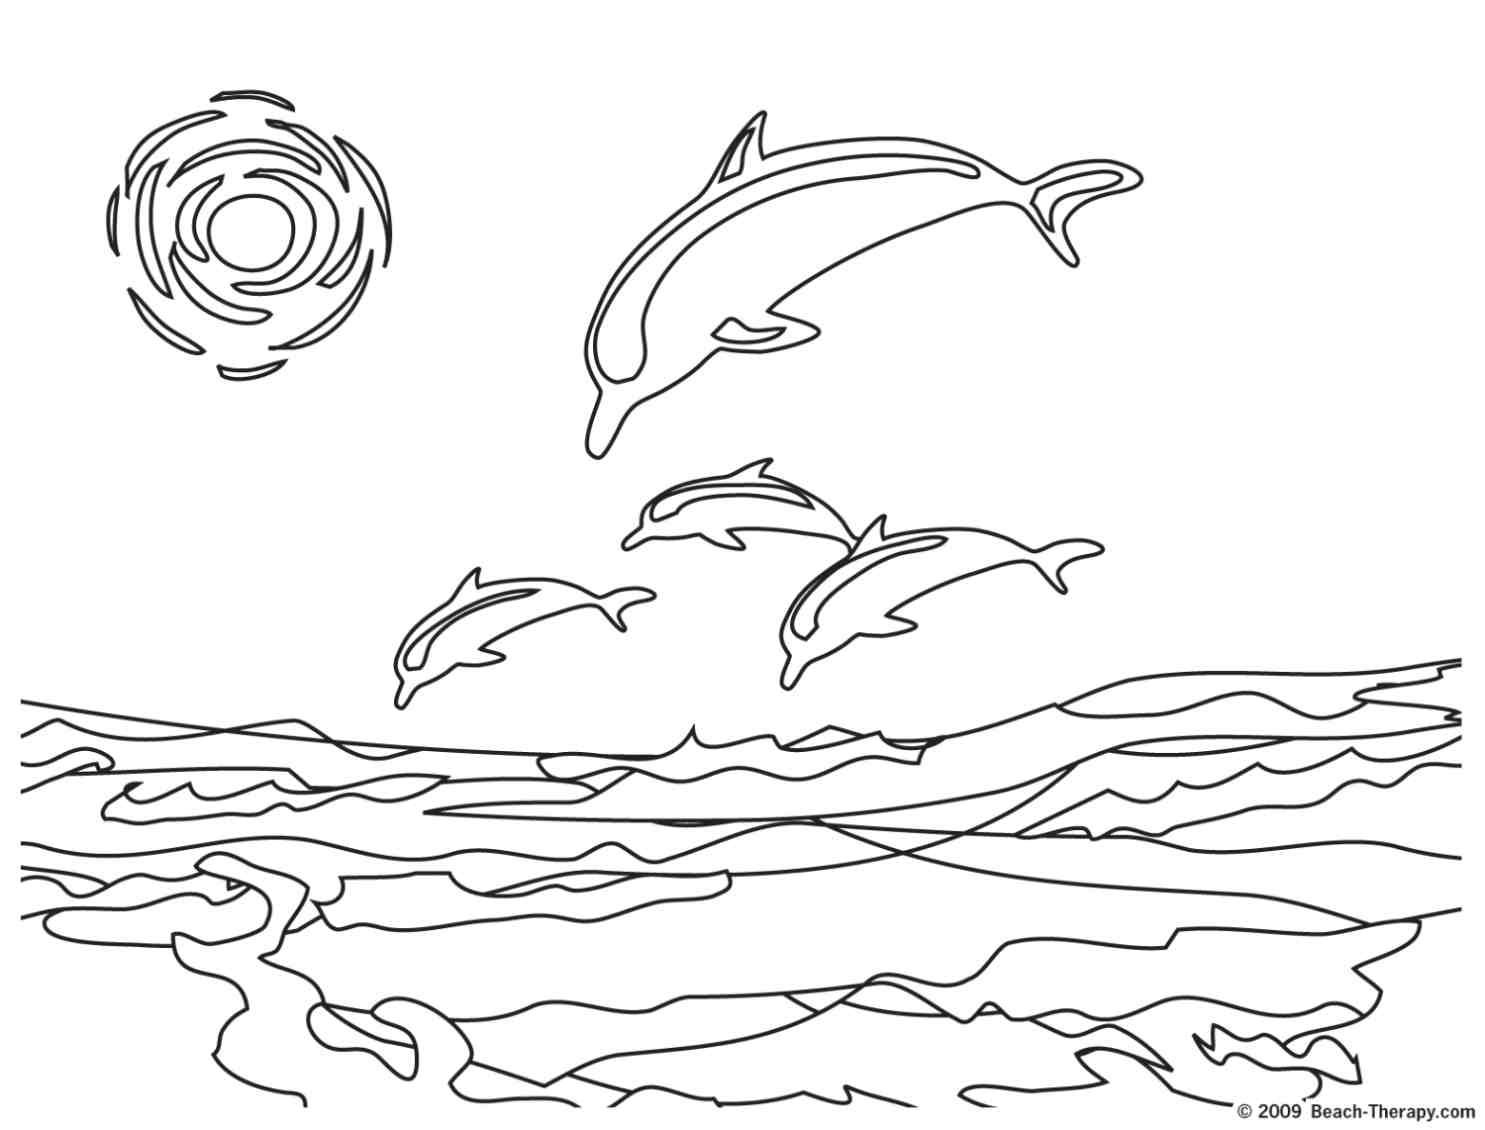 Beach Coloring Pages Dolphin Picture To Color For Kidsmy Son Loves Dolphins